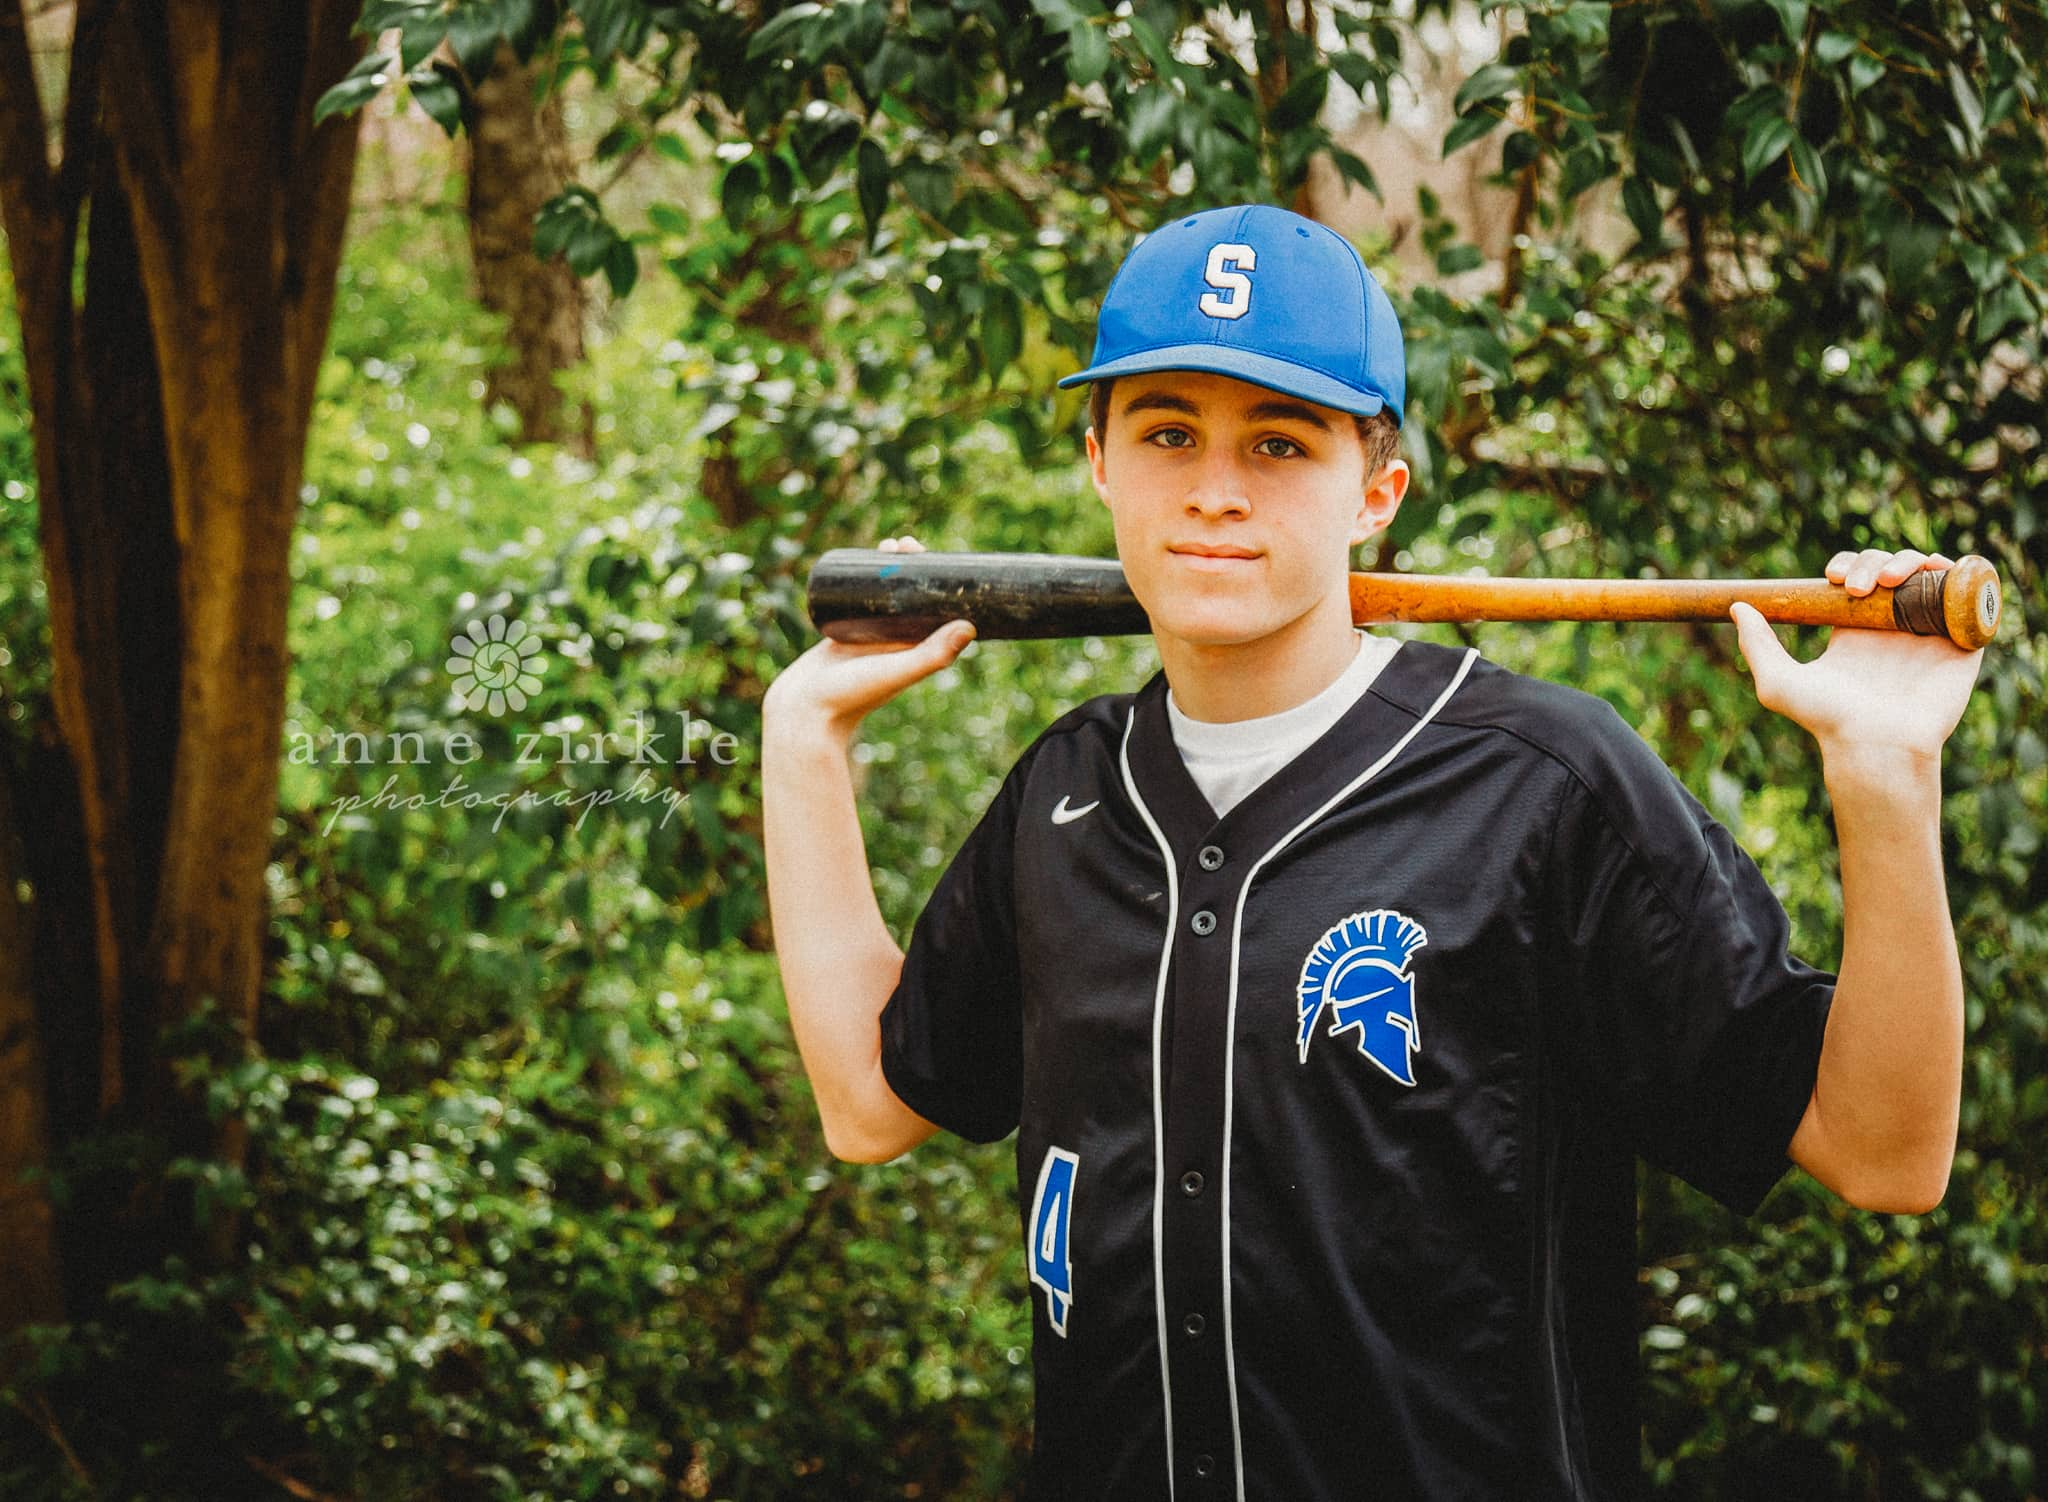 senior boy with baseball bat #mooresville #northcarolina #davidson #lakenorman #southiredell #pinelakeprep #highschool #highschoolsenior #highschoolseniors #seniors